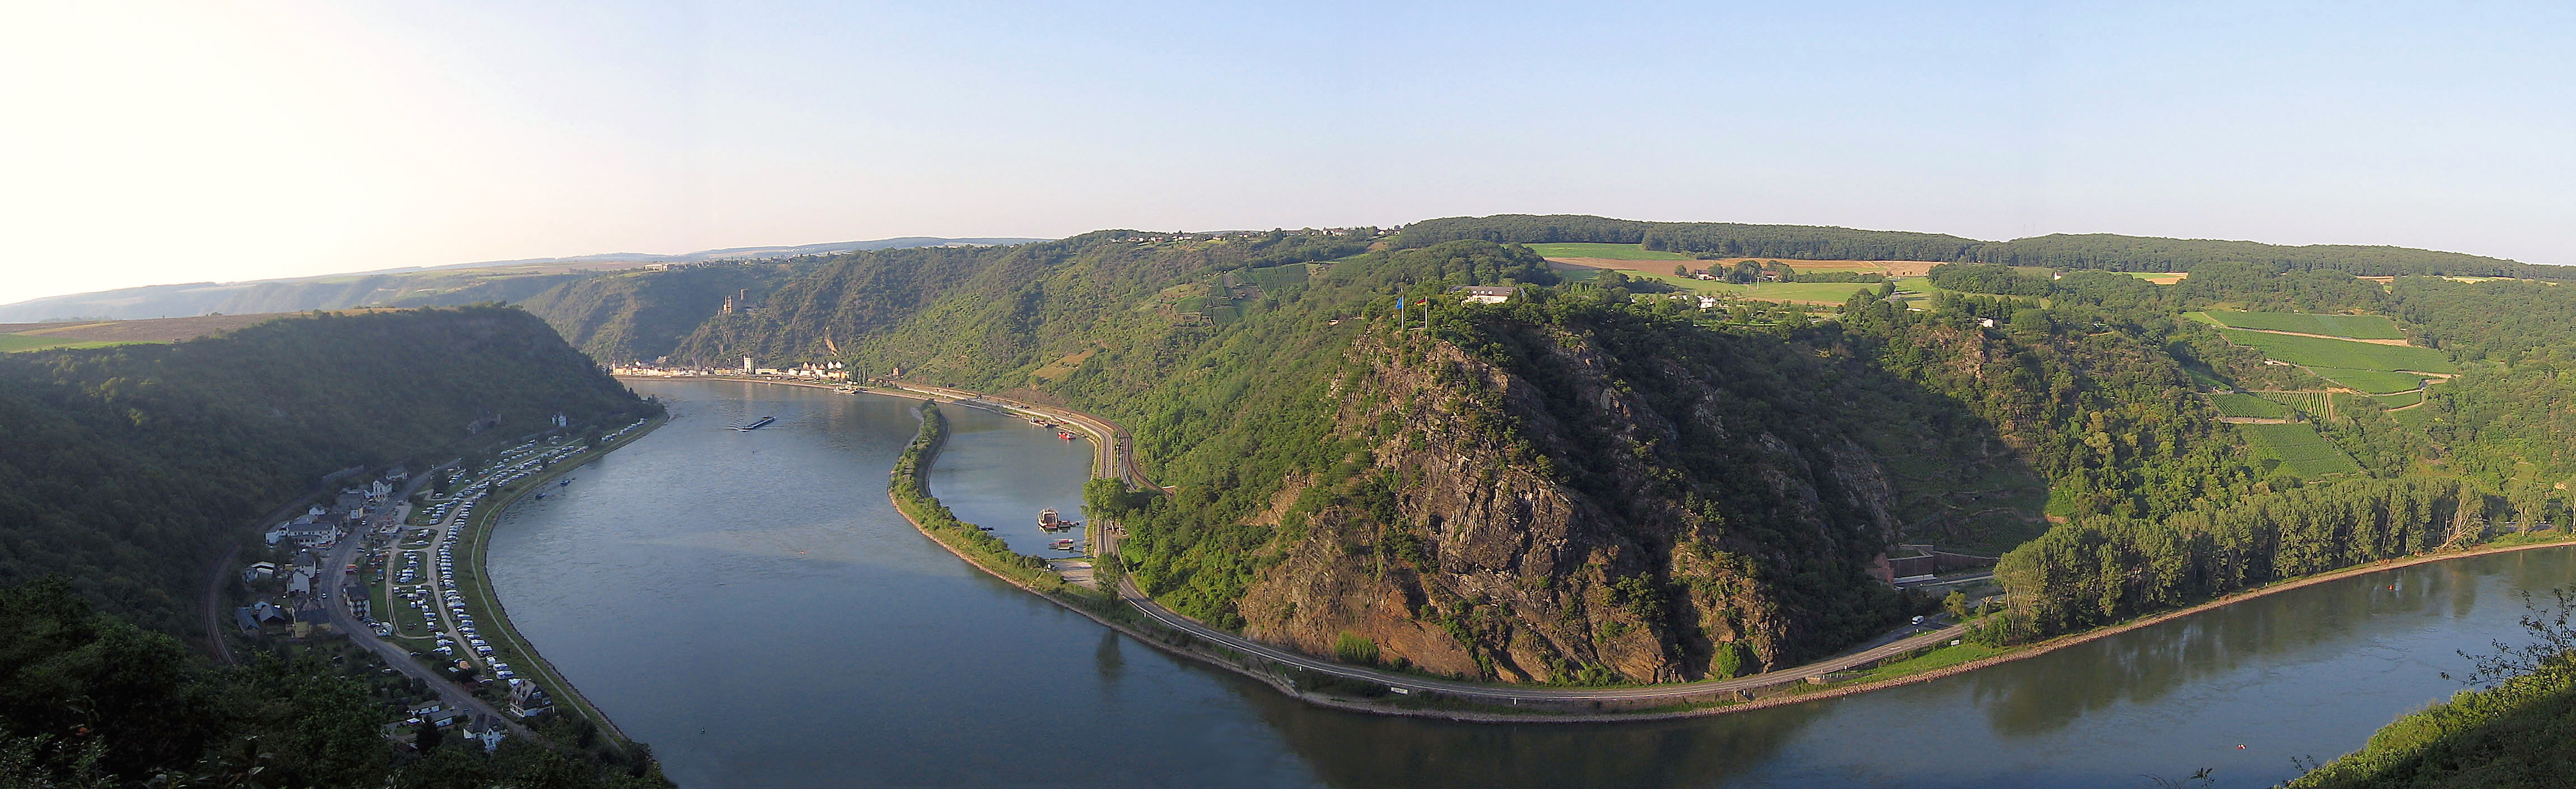 https://upload.wikimedia.org/wikipedia/commons/d/d0/Loreley_mit_tal_von_linker_rheinseite.jpg